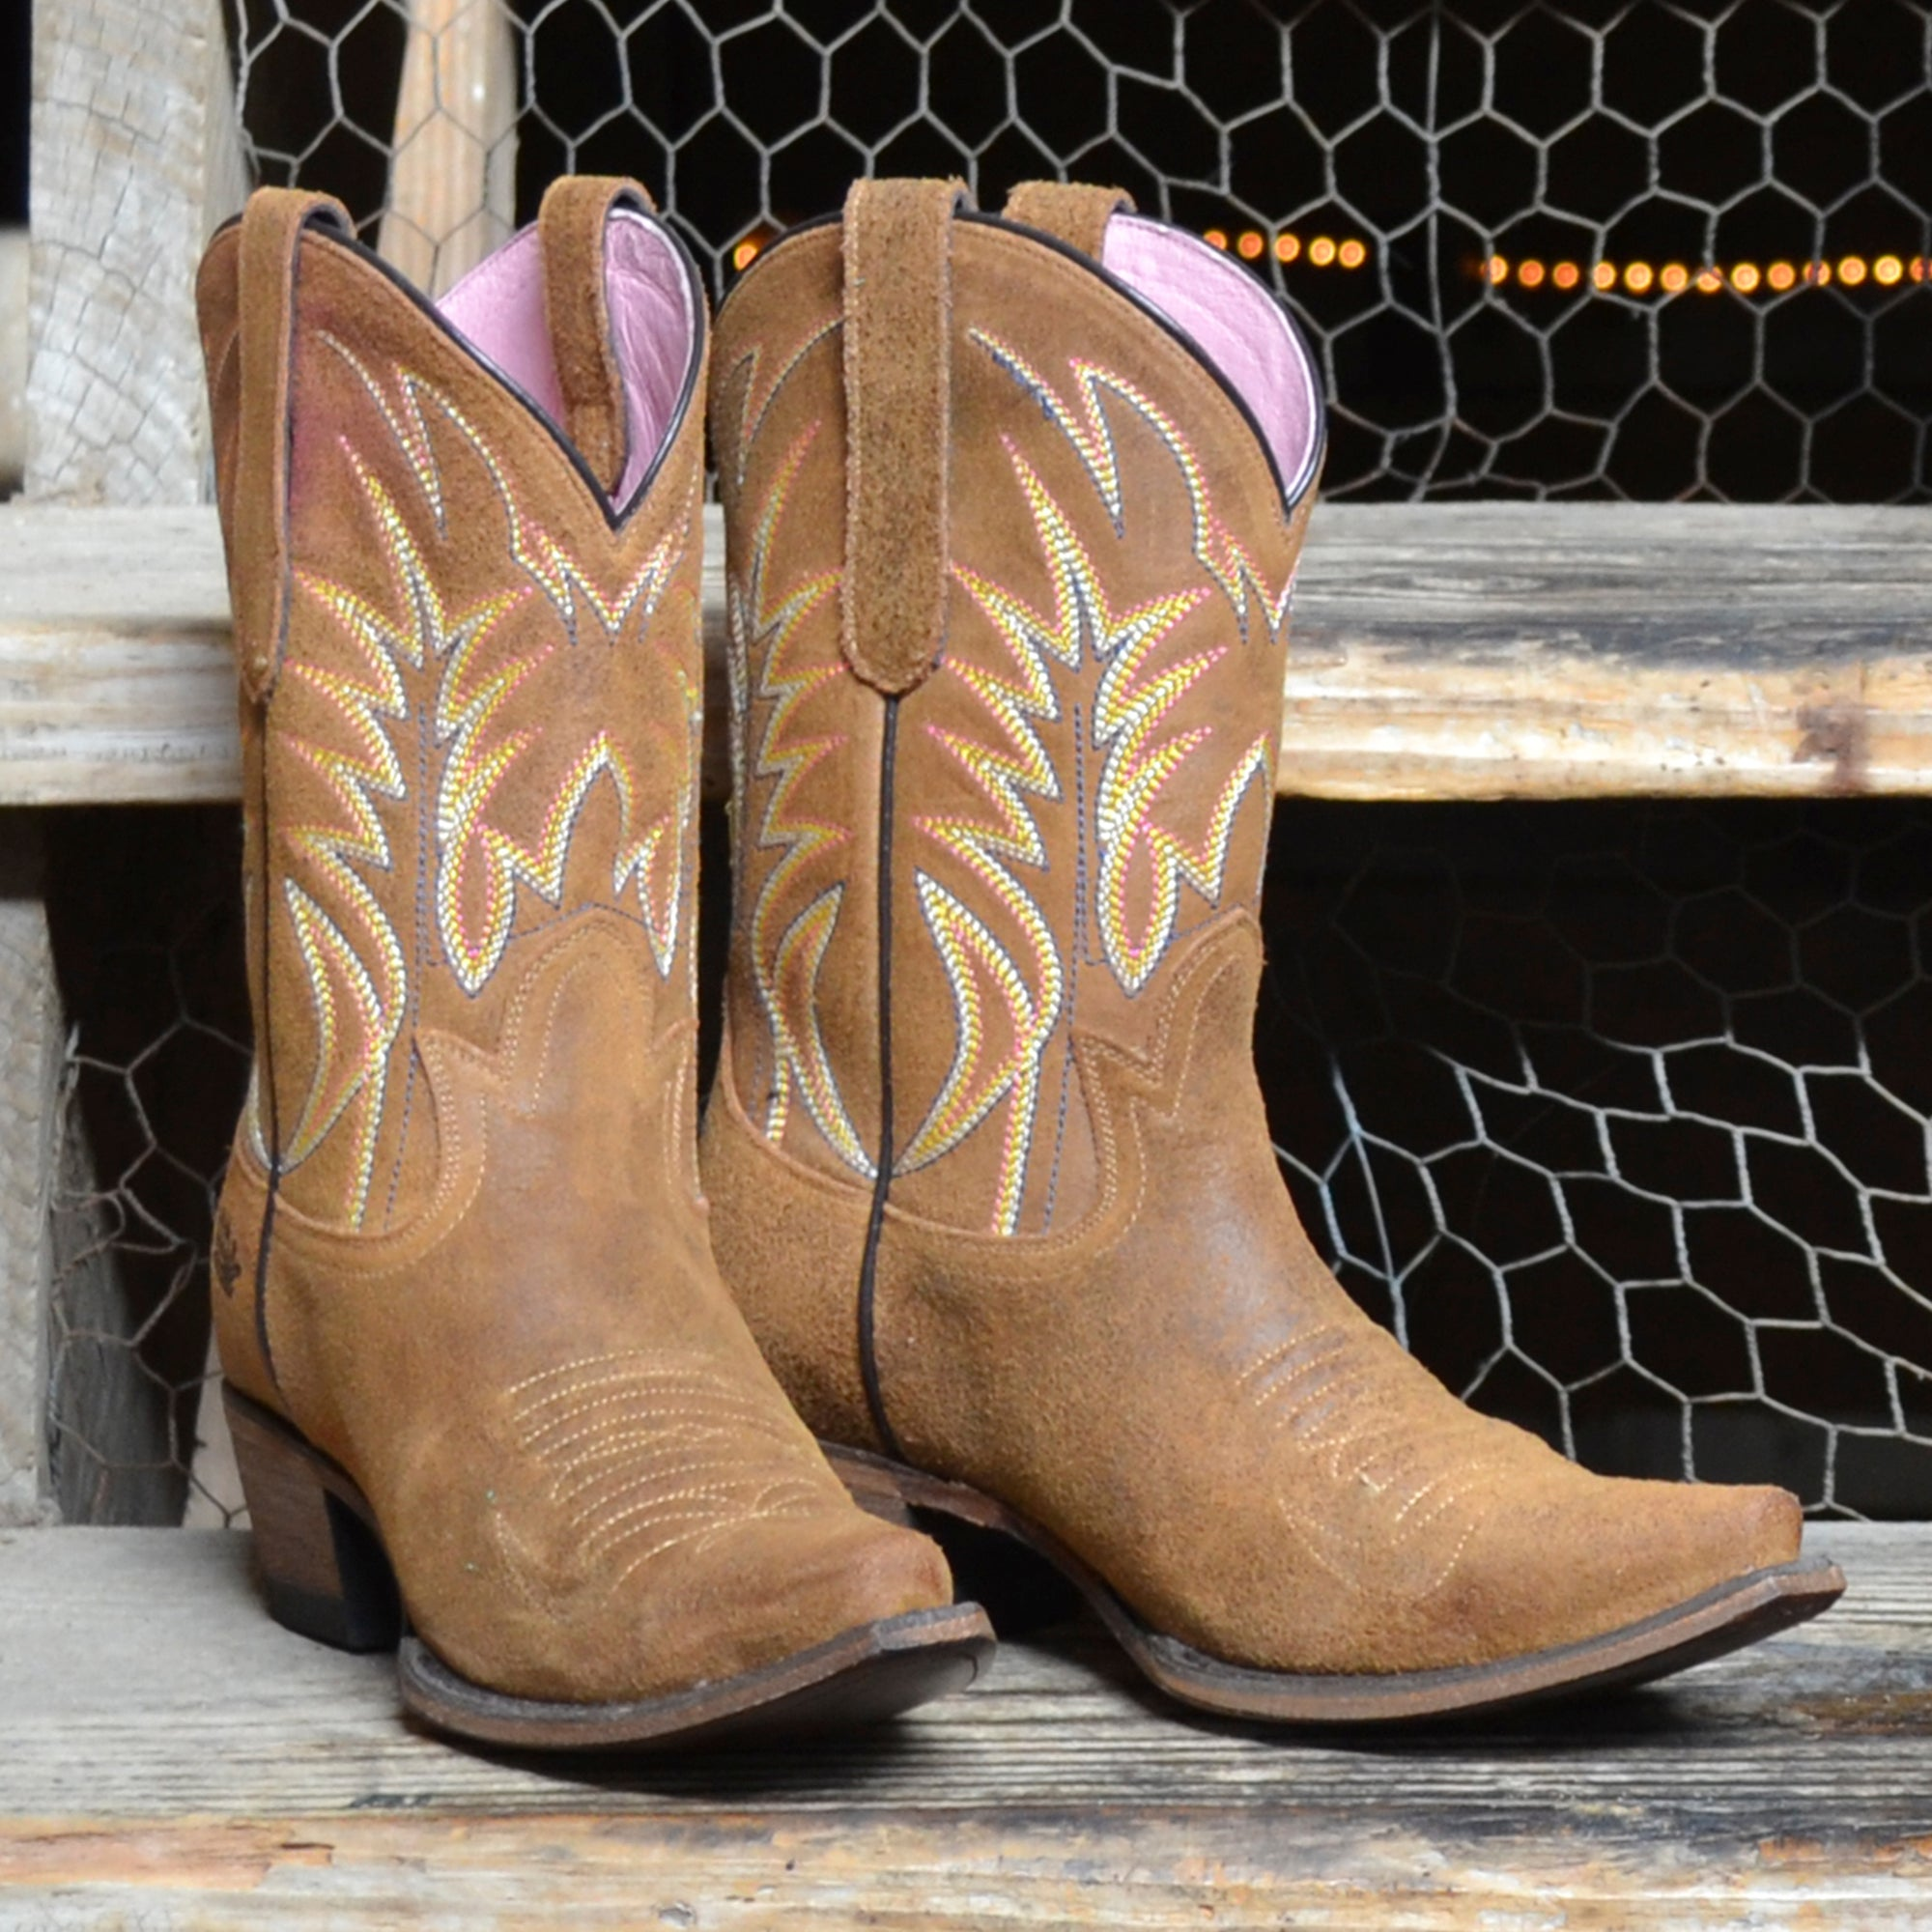 Junk Gypsy Dirt Road Dreamer Ladies Boots by Lane Handmade Boots